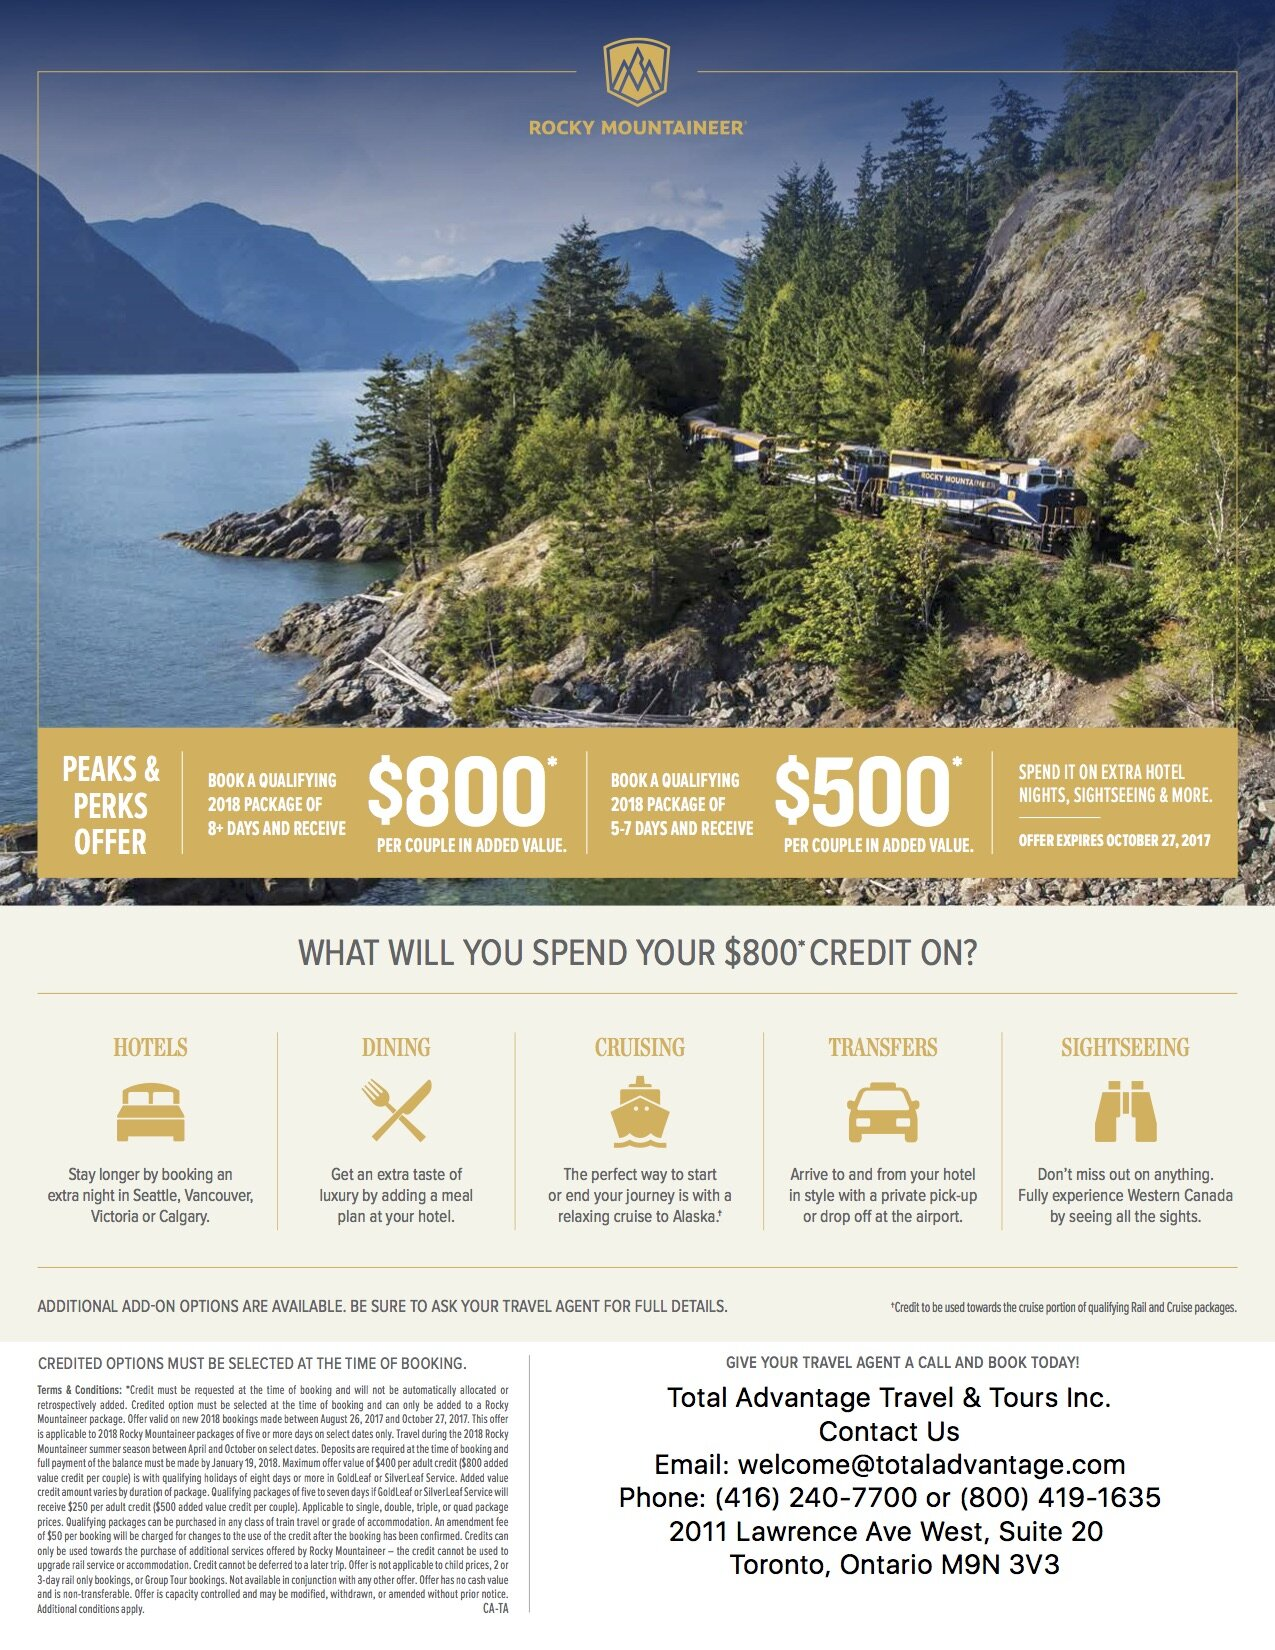 Rocky Mountaineer Peaks Offer Discover Canada